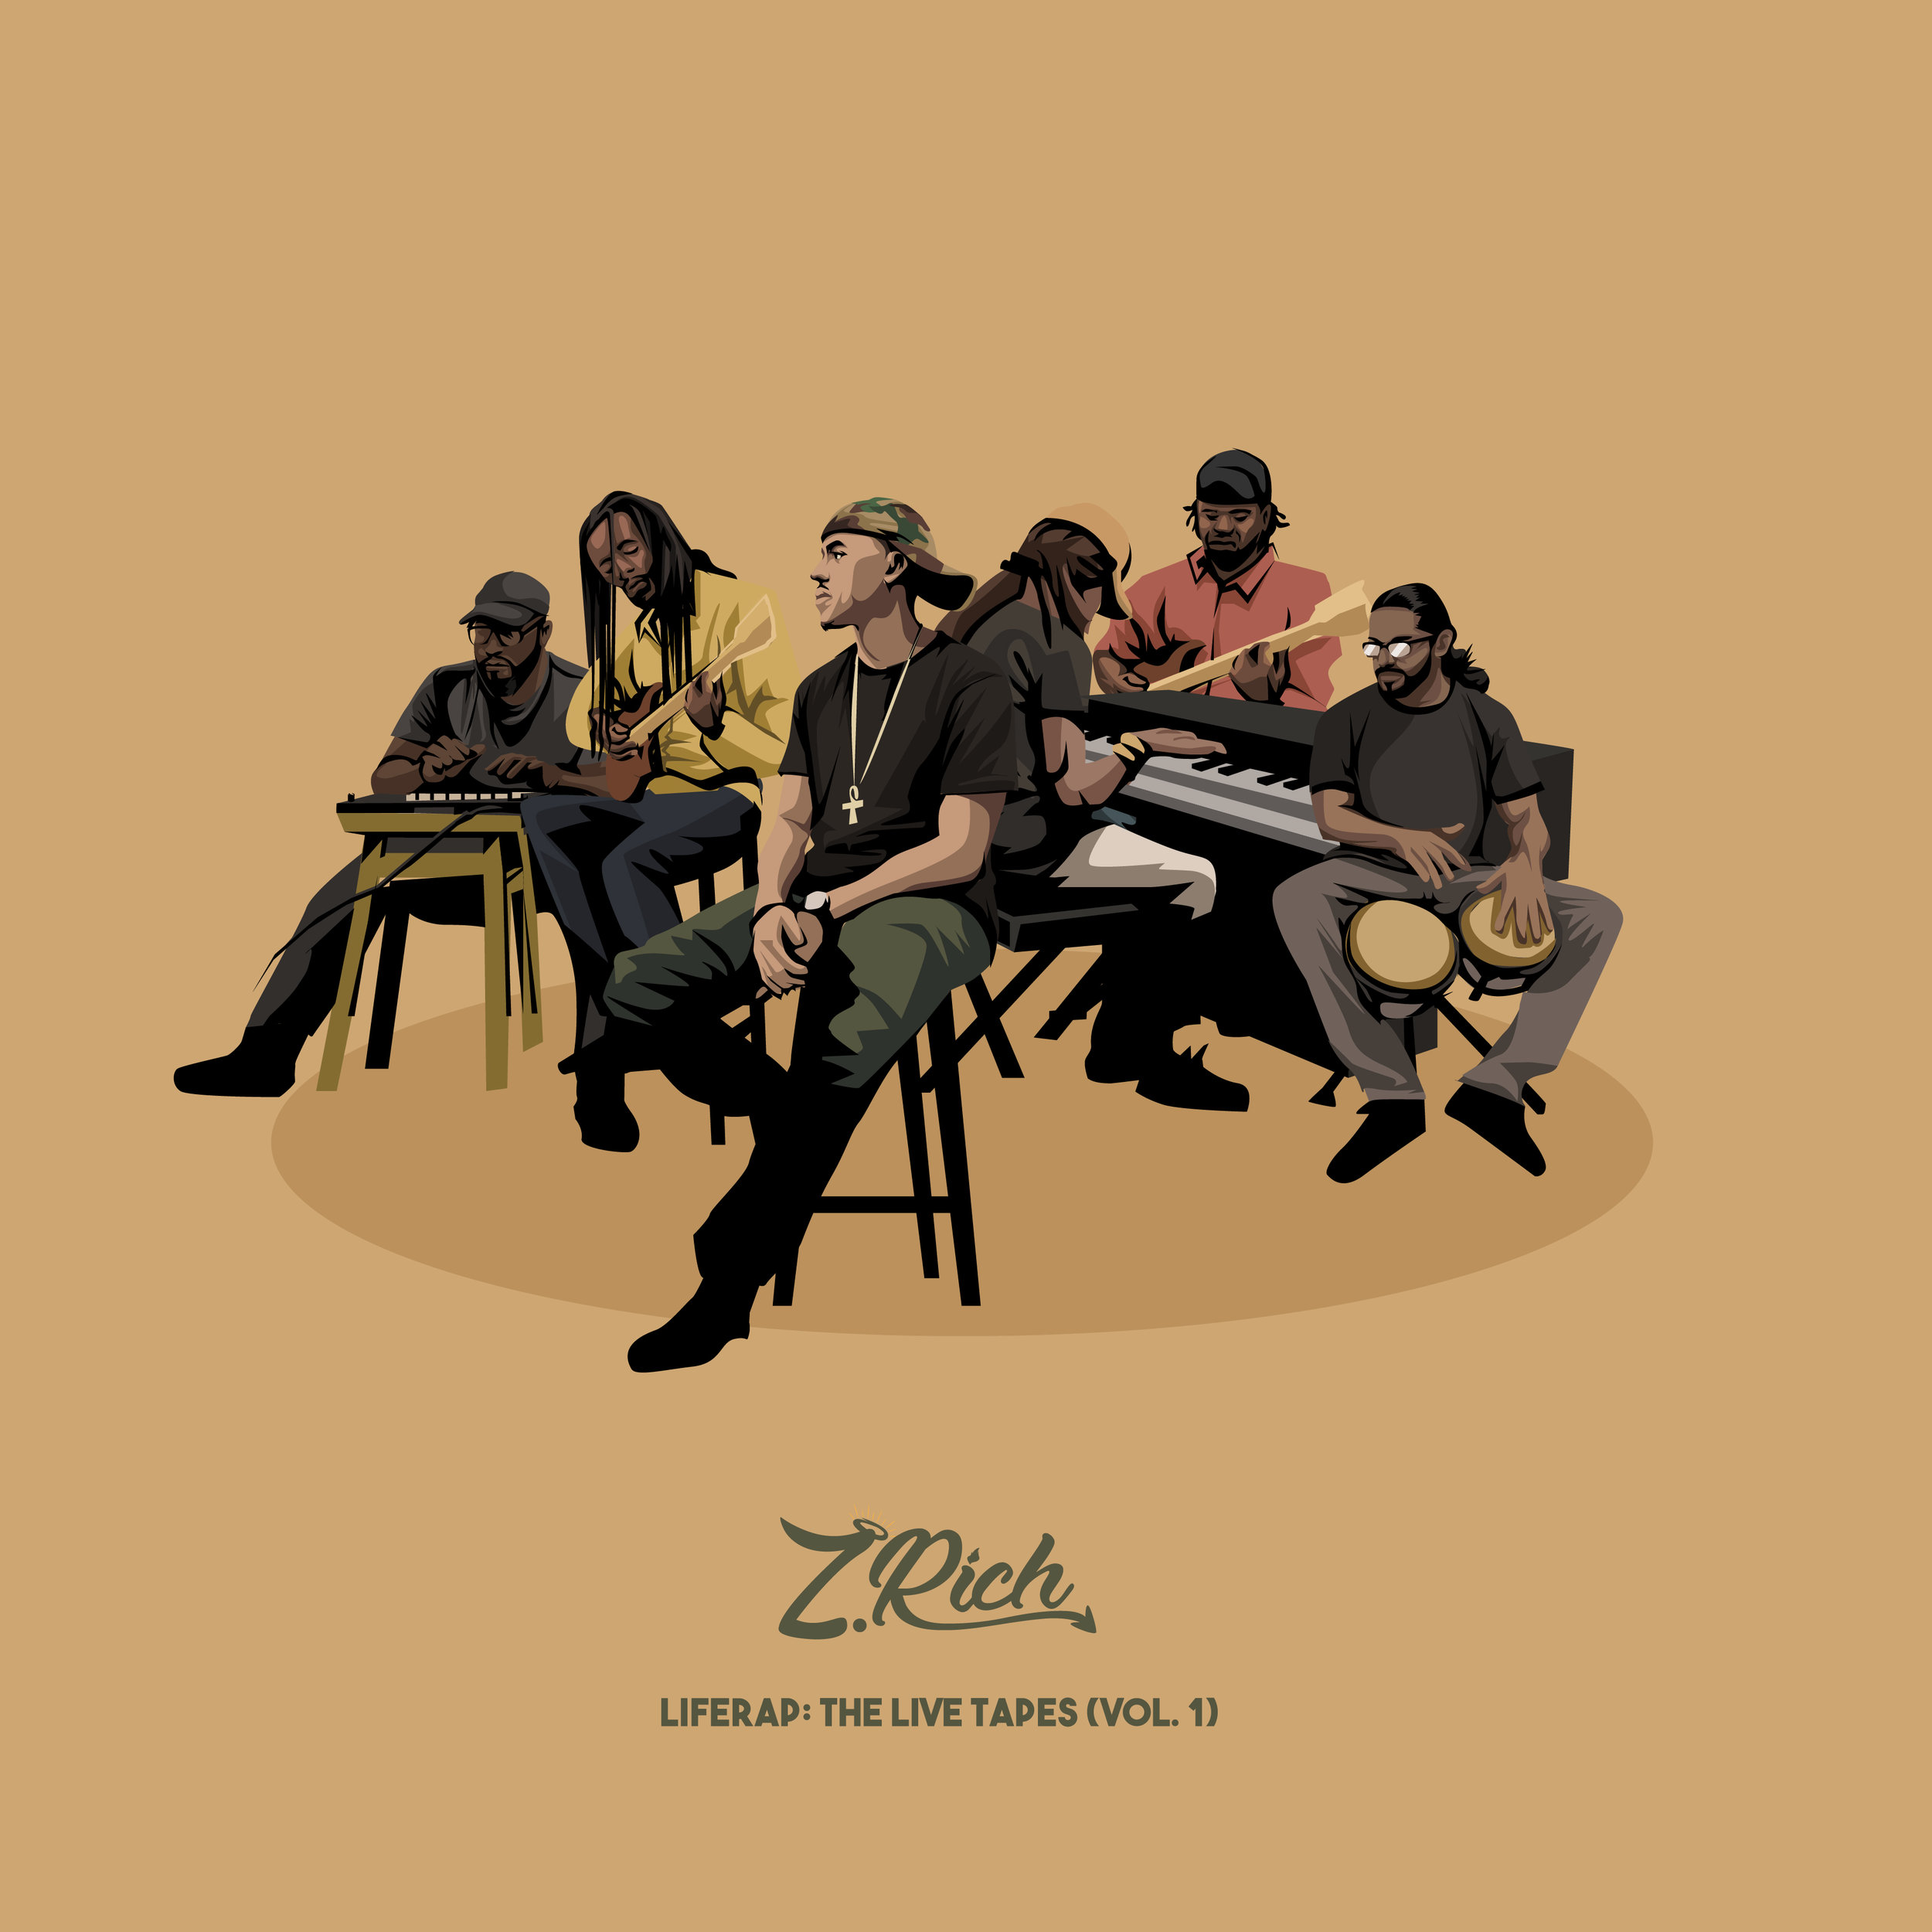 LATEST RELEASE - Z. Rich - LifeRap: The Live Tapes (Vol. 1)Backed by a Live Band, Z. Rich delivers vivid storytelling overtop of a soulful backdrop of instrumentation. Along with the 13 track LP, all of the songs were turned into video content as well, accumulating over 500k views & counting! Watch Here: